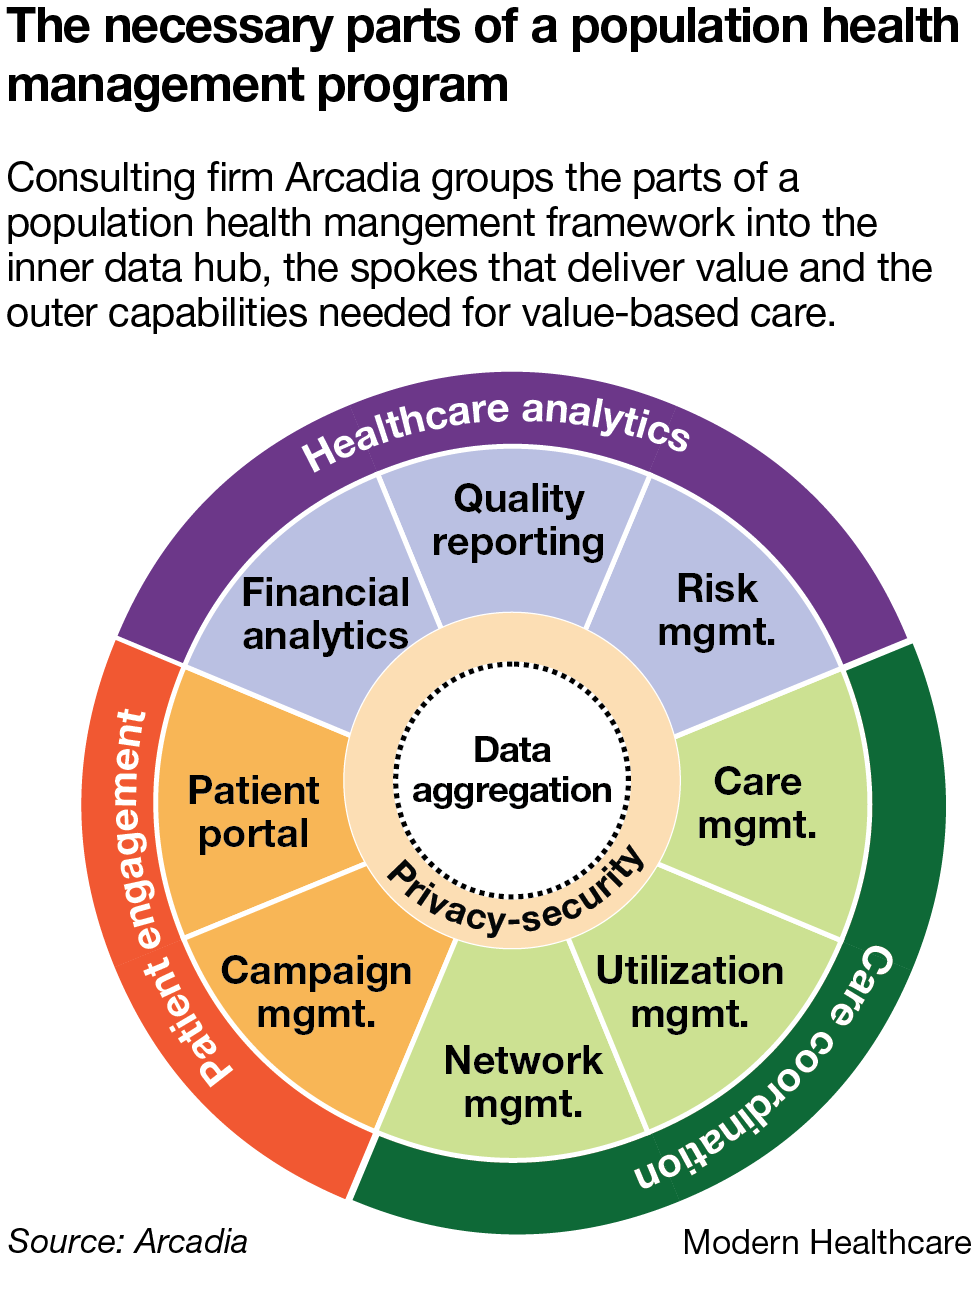 The necessary parts of a population health management program